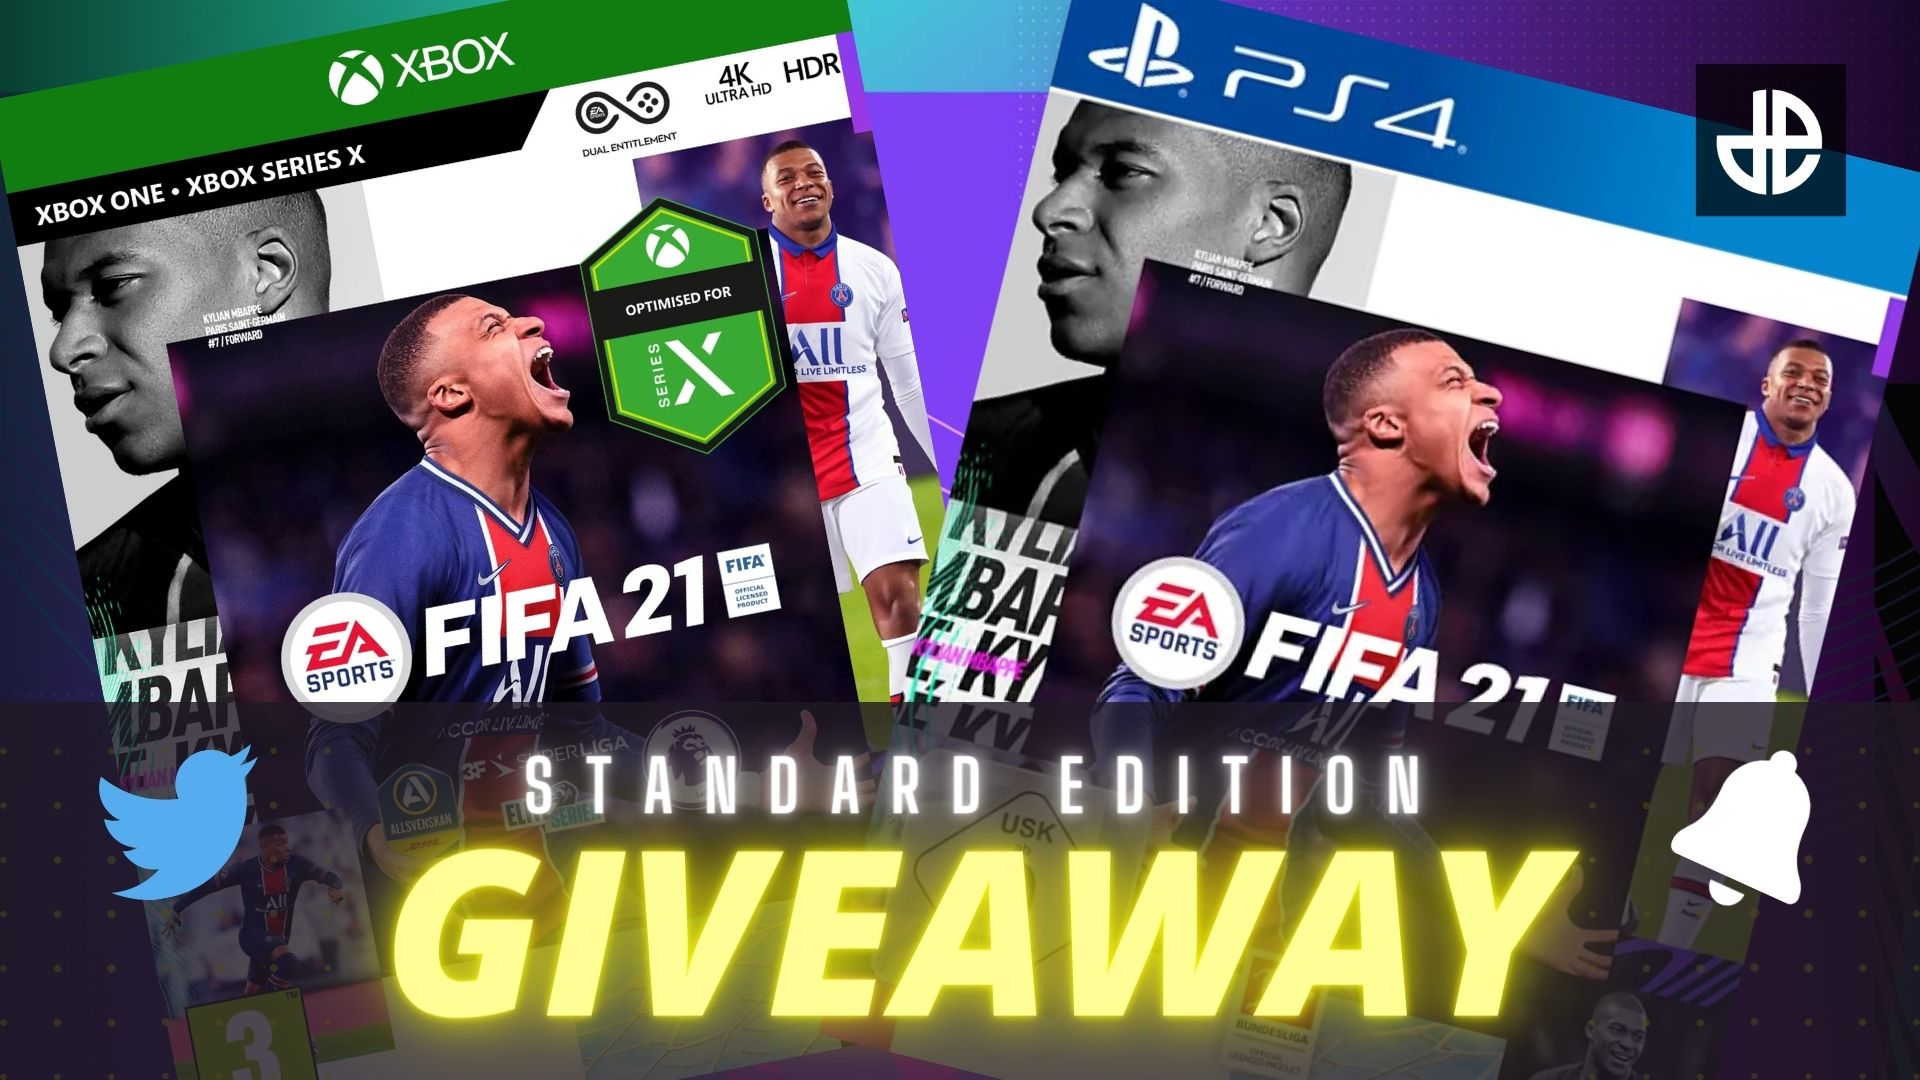 Fifa 21 News On Twitter 𝗙𝗜𝗙𝗔 𝟮𝟭 𝗴𝗶𝘃𝗲𝗮𝘄𝗮𝘆 𝗵𝗲𝗿𝗲 𝘄𝗲 𝗴𝗼 We Re Giving Away A Copy Of Fifa21 And Here S How To Enter Like And Rt This Post